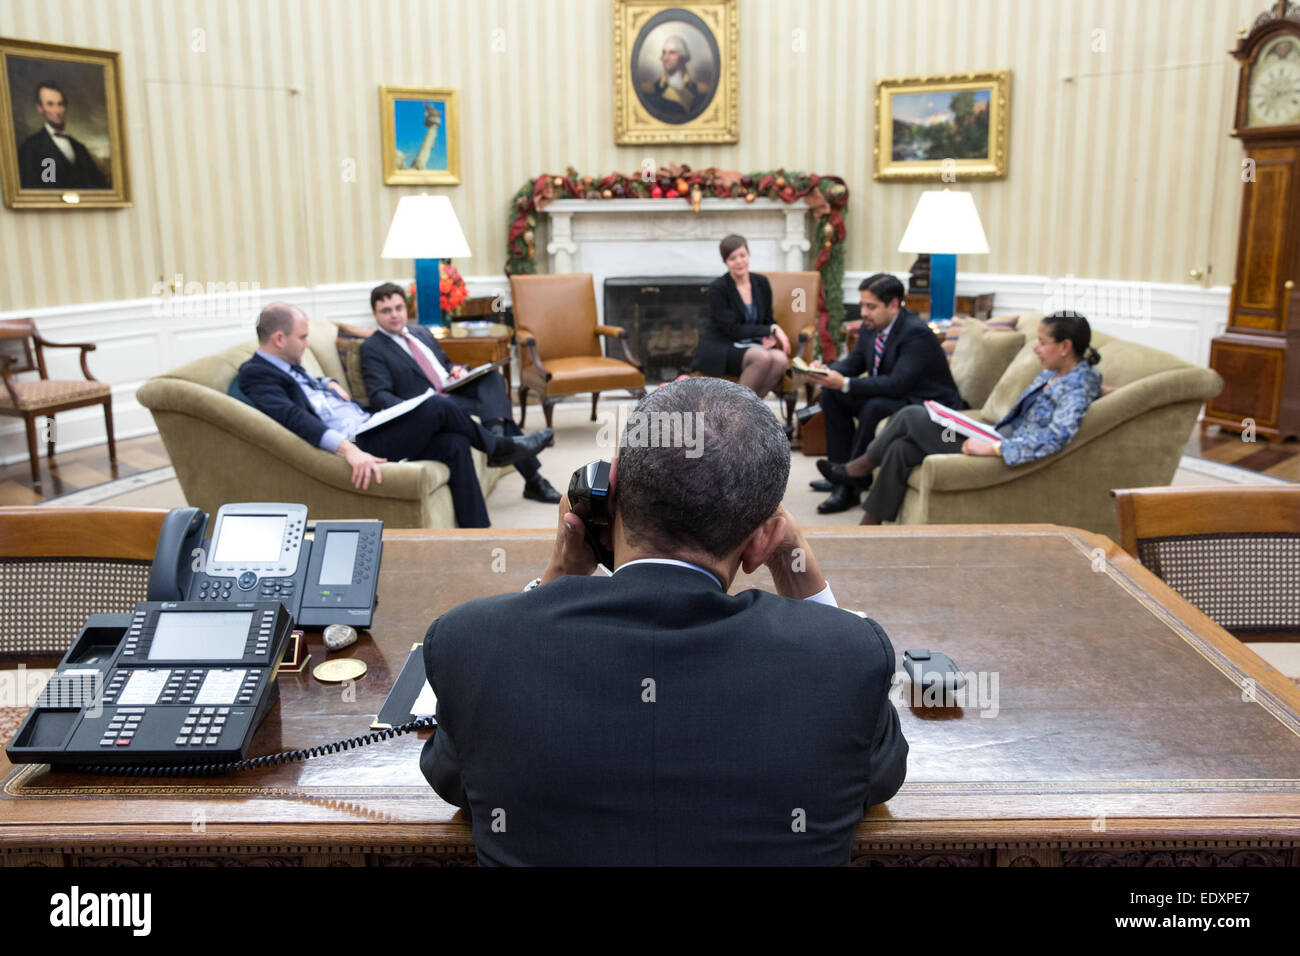 President Barack Obama talks with President Raúl Castro of Cuba from the Oval Office, Dec. 16, 2014. - Stock Image